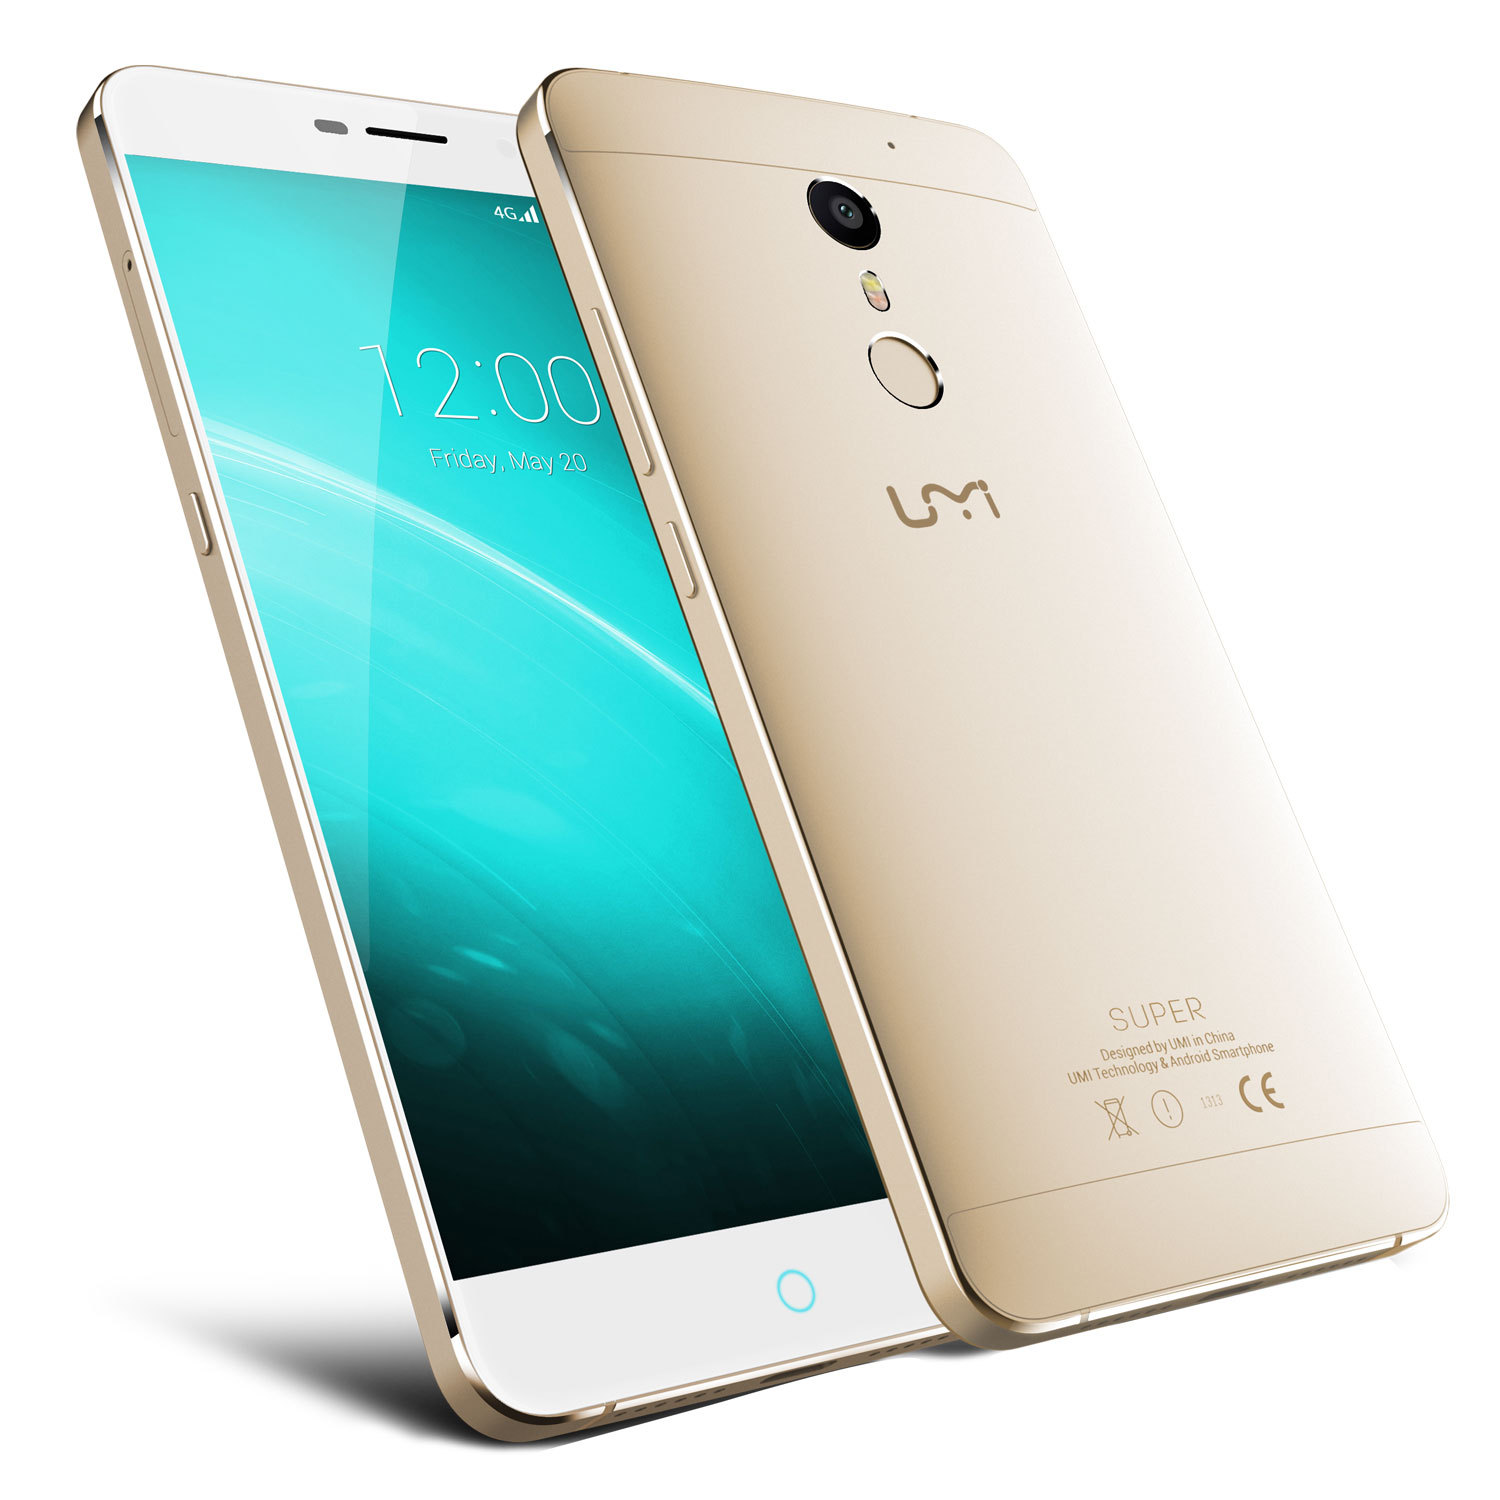 "UMI Super 5.5"" 4+32G MTK6755 Octa Core Mobile Phone"